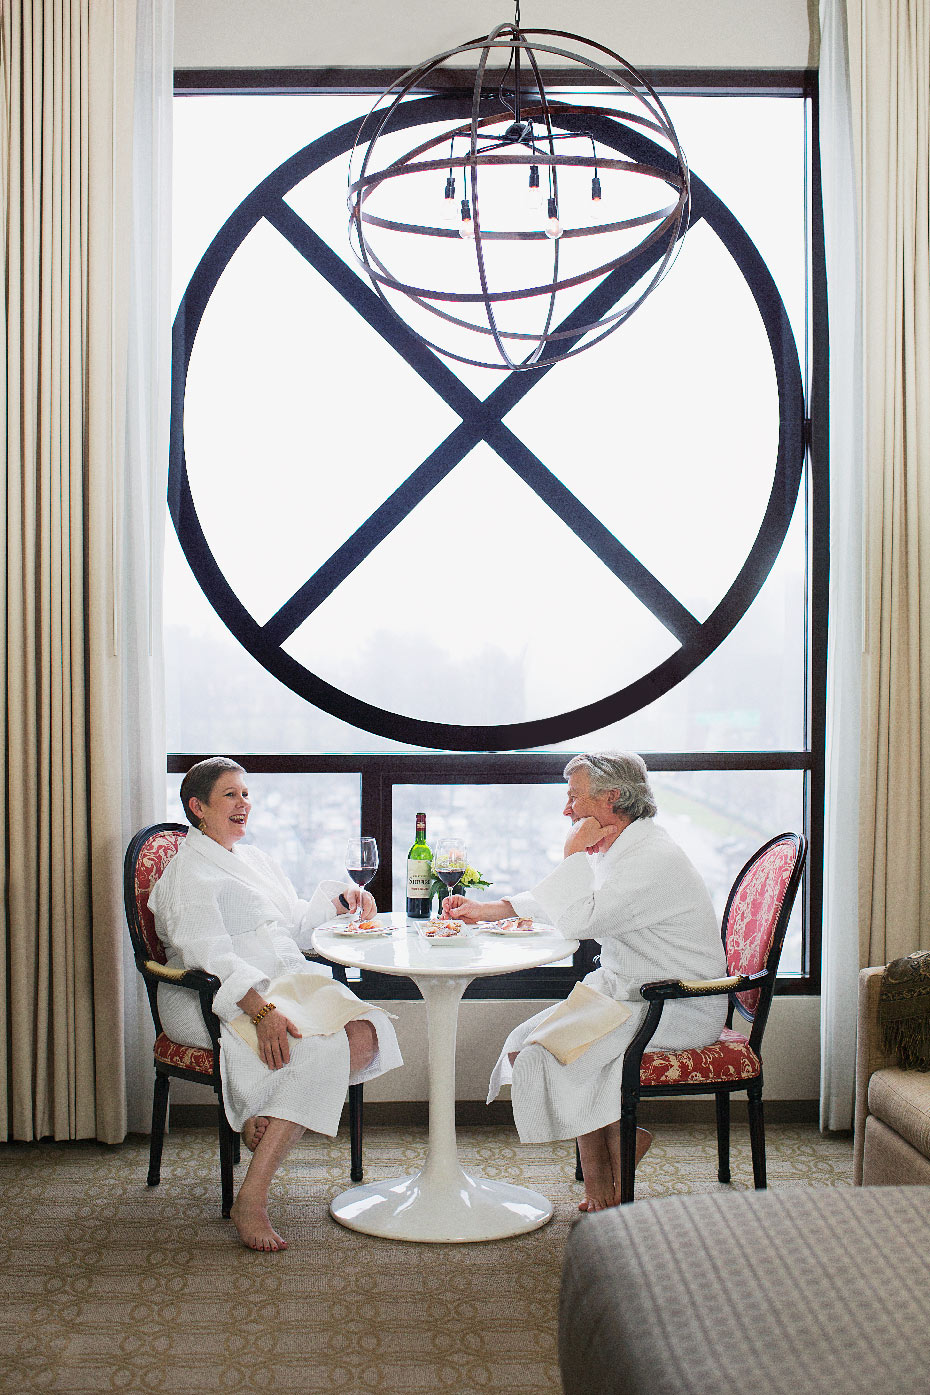 Stacey Van Berkel Photography I Dennis & Nancy Quaintence having wine in bathrobes I Proximity Hotel I Luxury living I